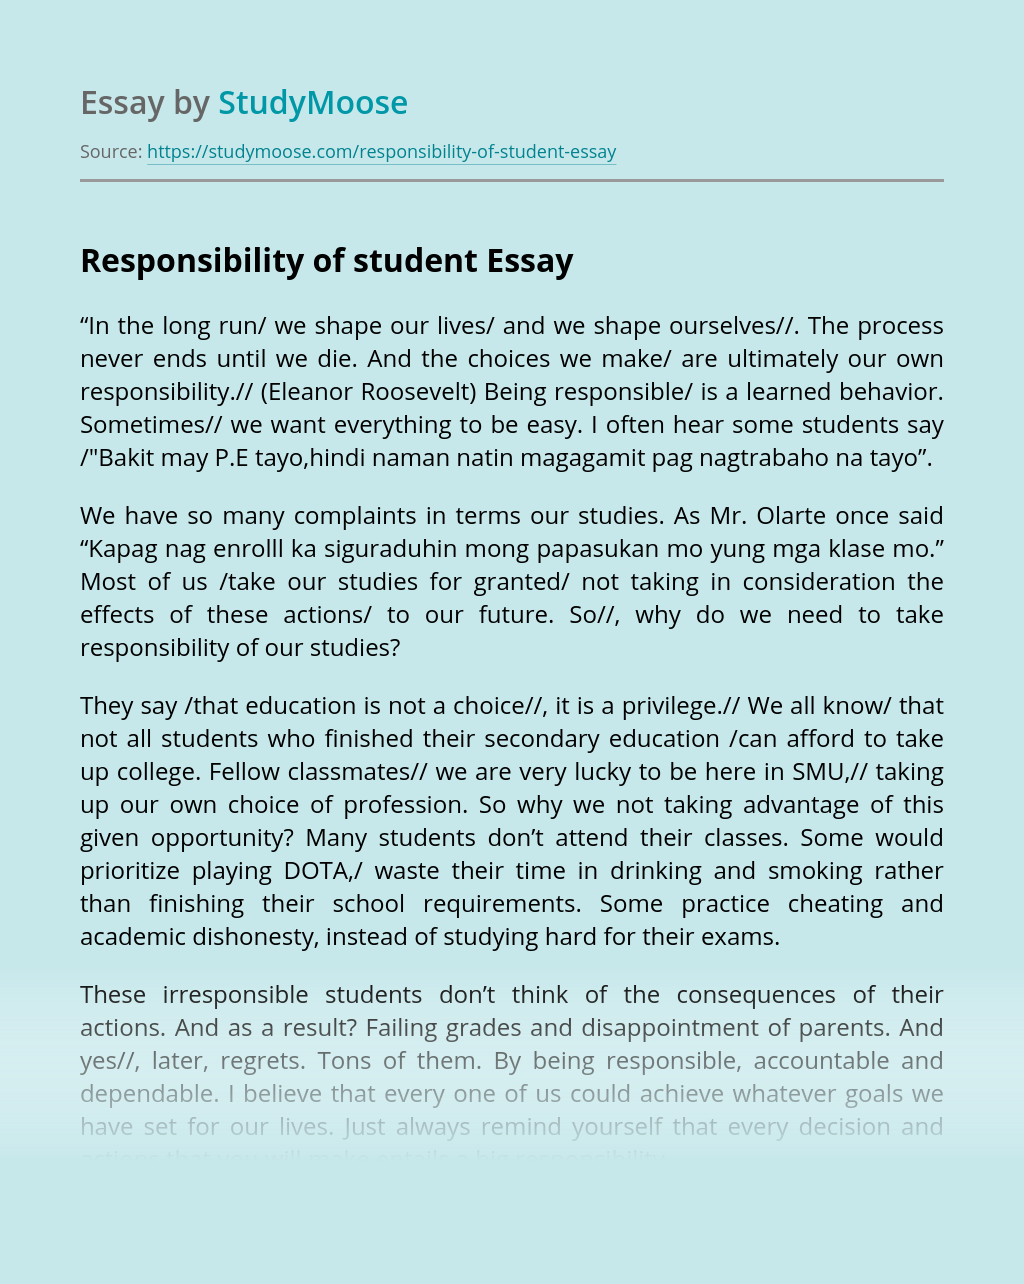 Responsibility of student